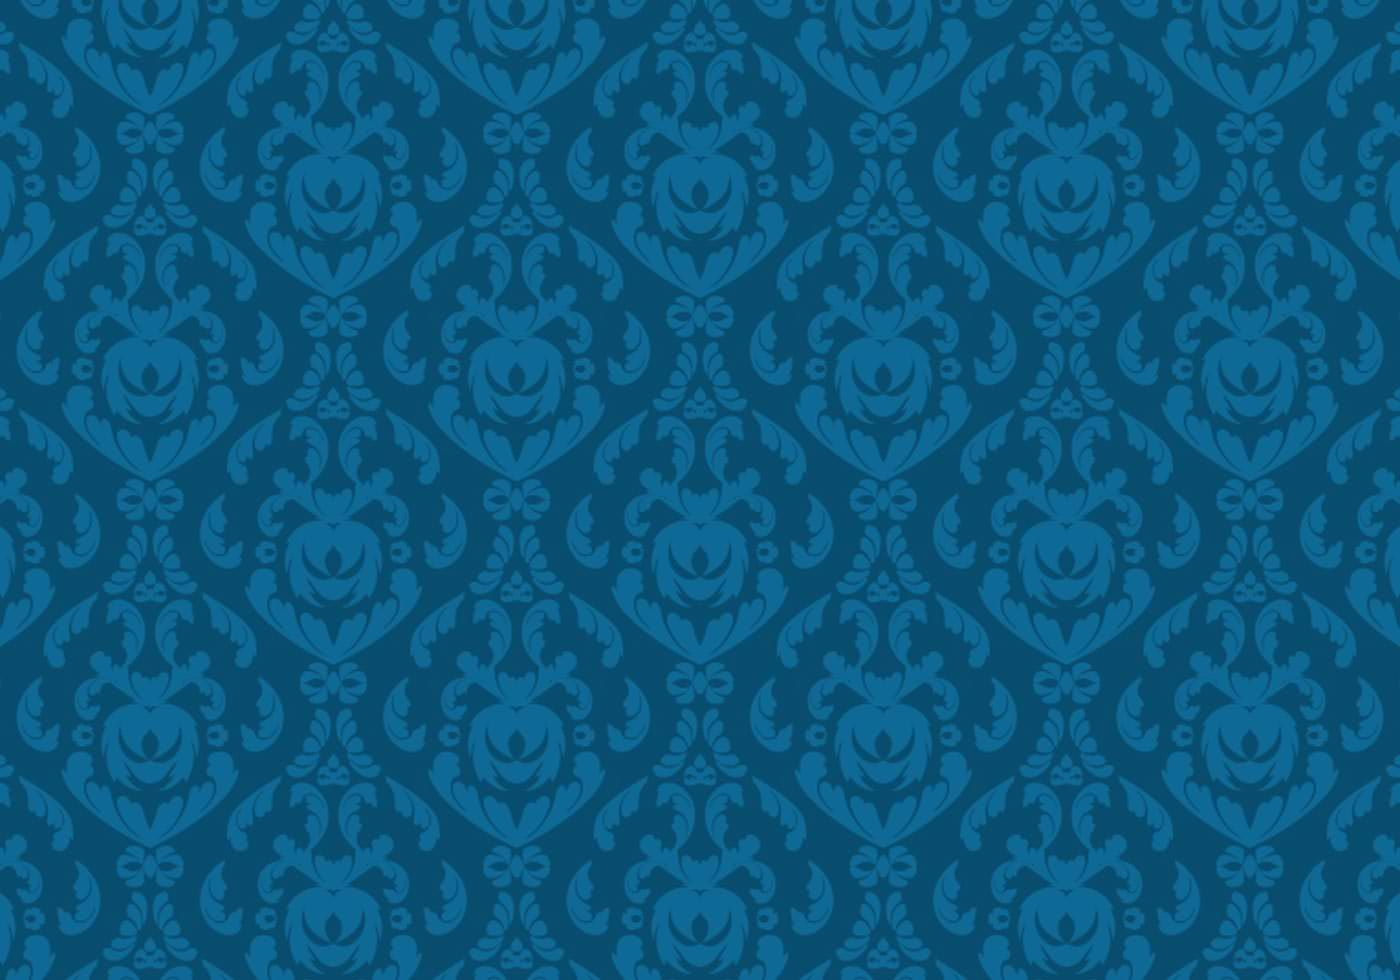 Decorative damask Wallpaper Pattern